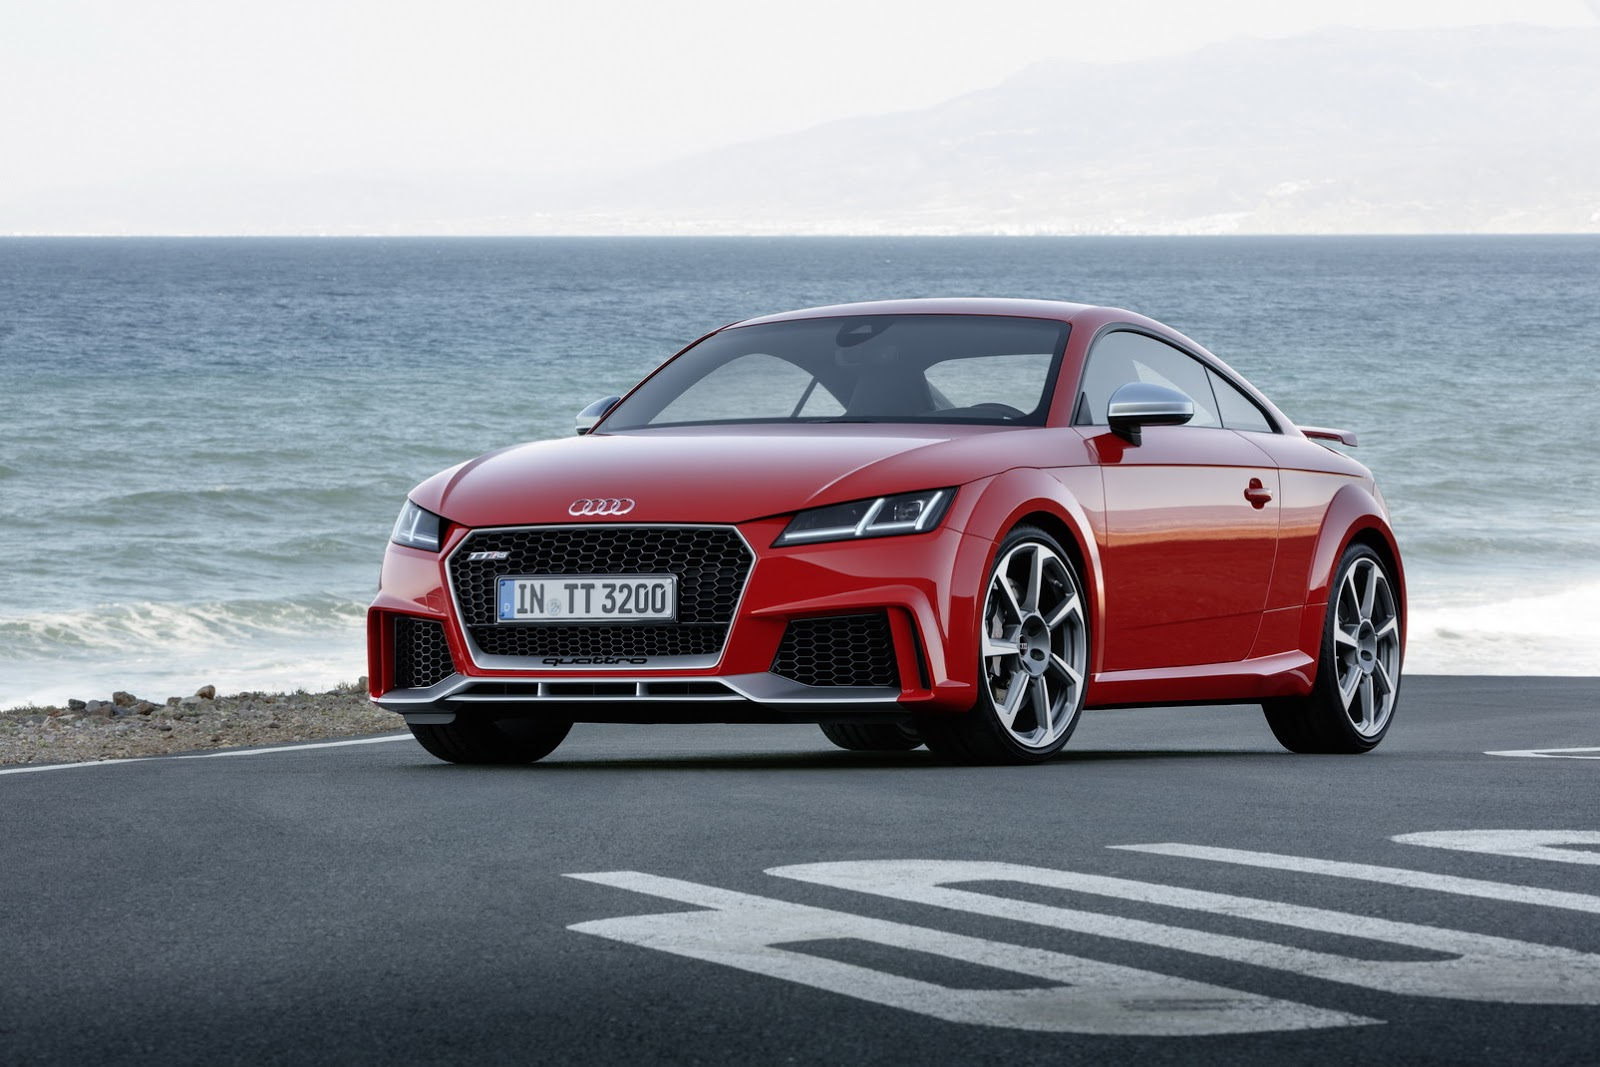 2017 Audi Tt Rs Roadster Amp Coupe Bring Five Cylinders With